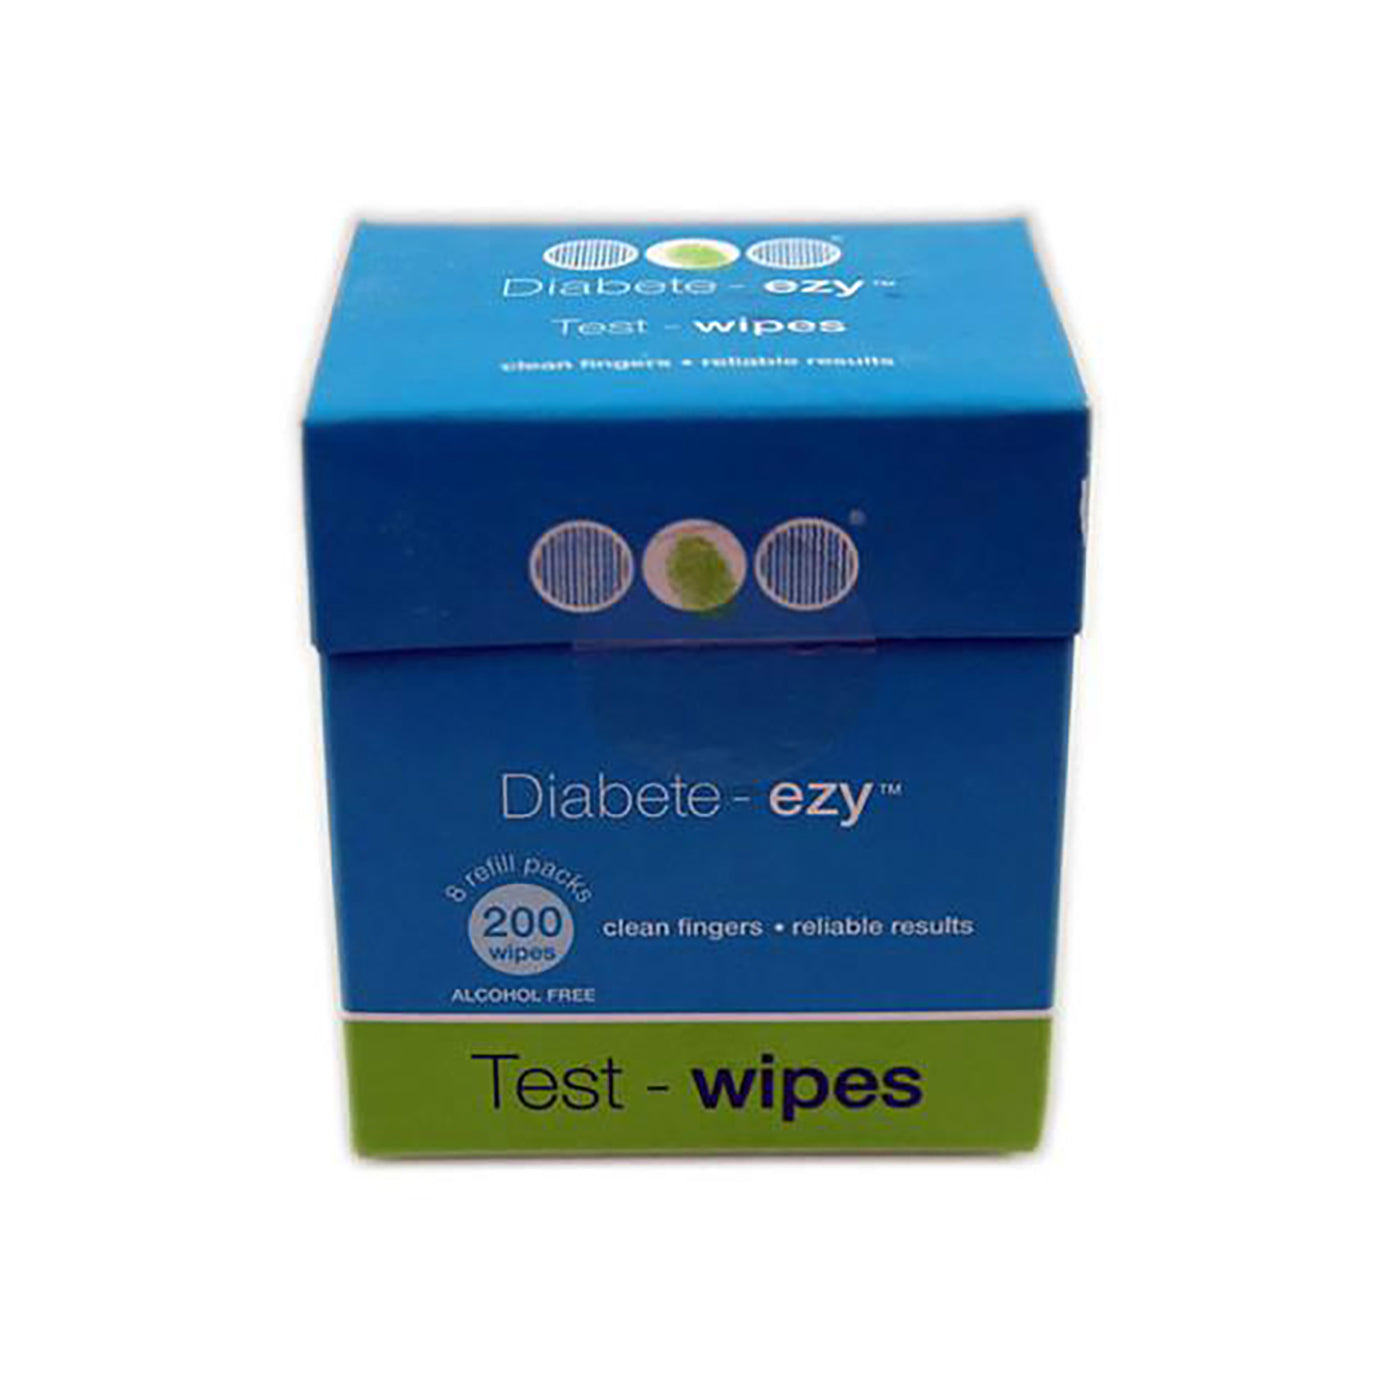 Box Of Diabete-ezy Refill Pack Test Wipes